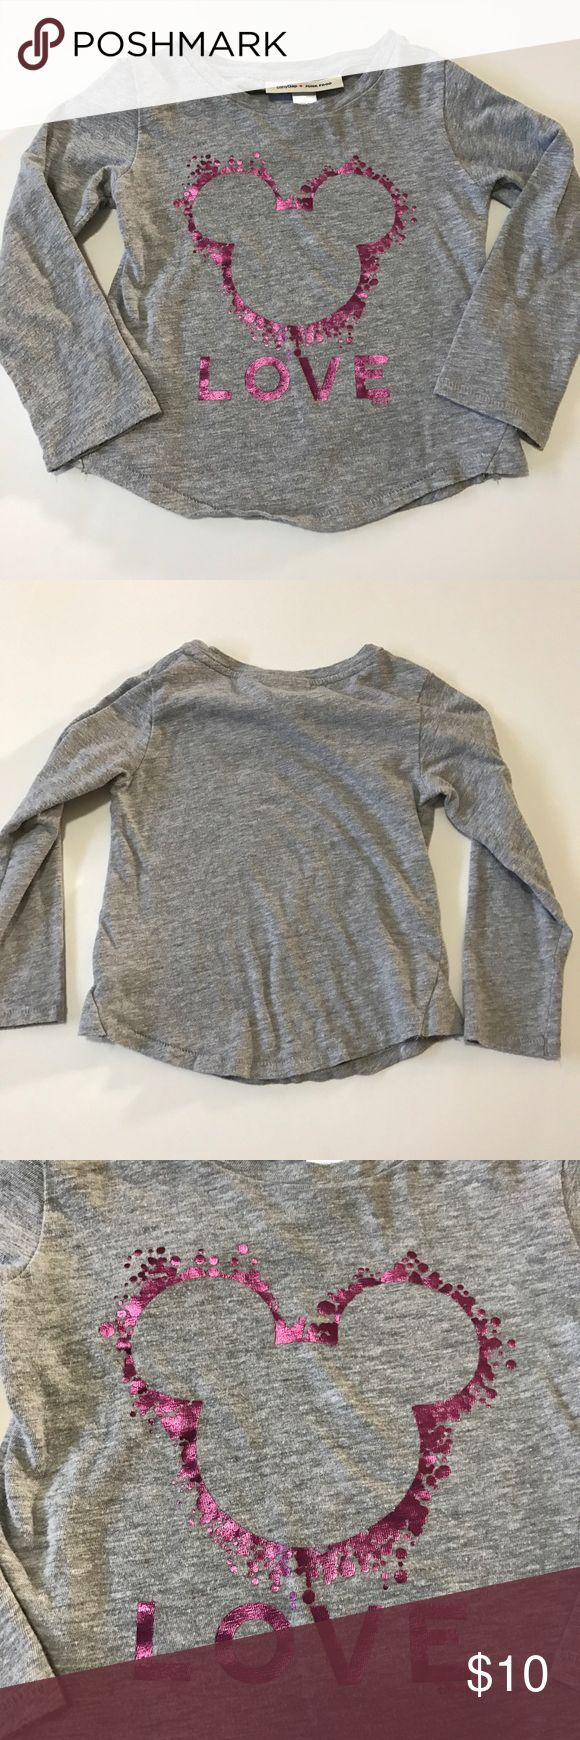 Baby Gap + Junk Food long sleeve shirt Baby Gap + Junk Food long sleeve shirt in gray with purplish/pink Minnie Mouse design and love on front. Baby Gap + Junk Food  Shirts & Tops Tees - Long Sleeve